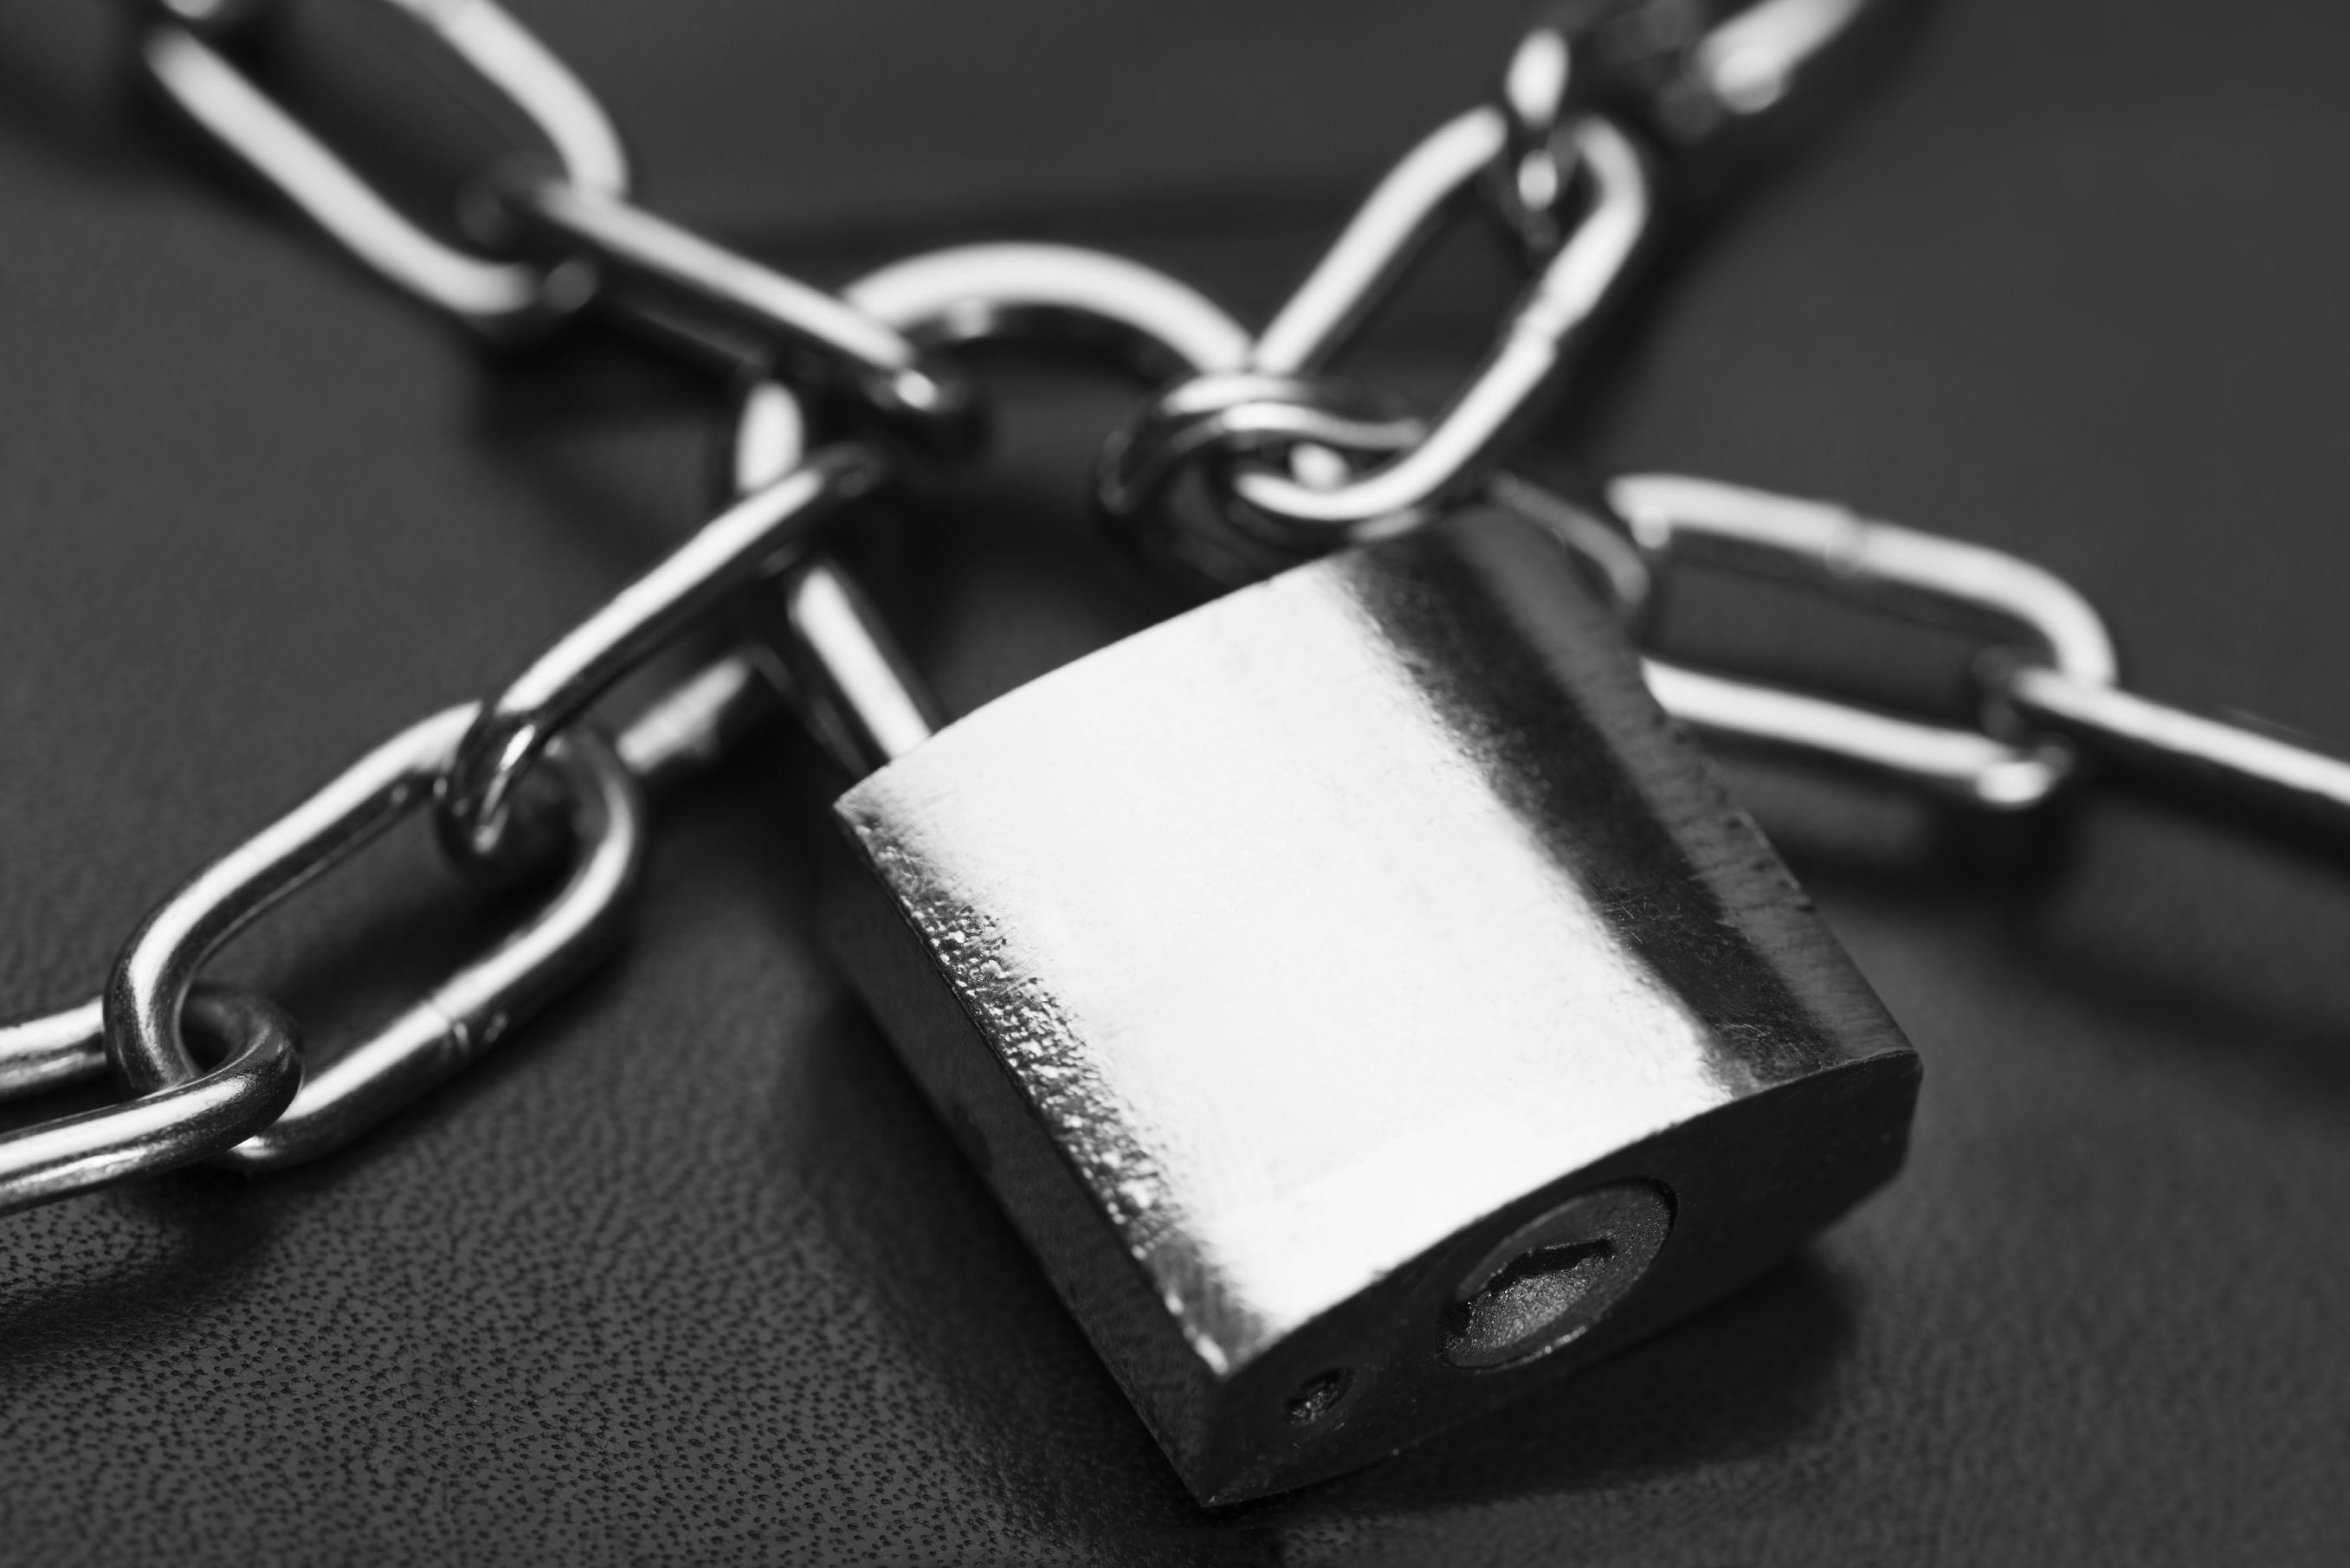 Closeup of metallic padlock and chains against black background